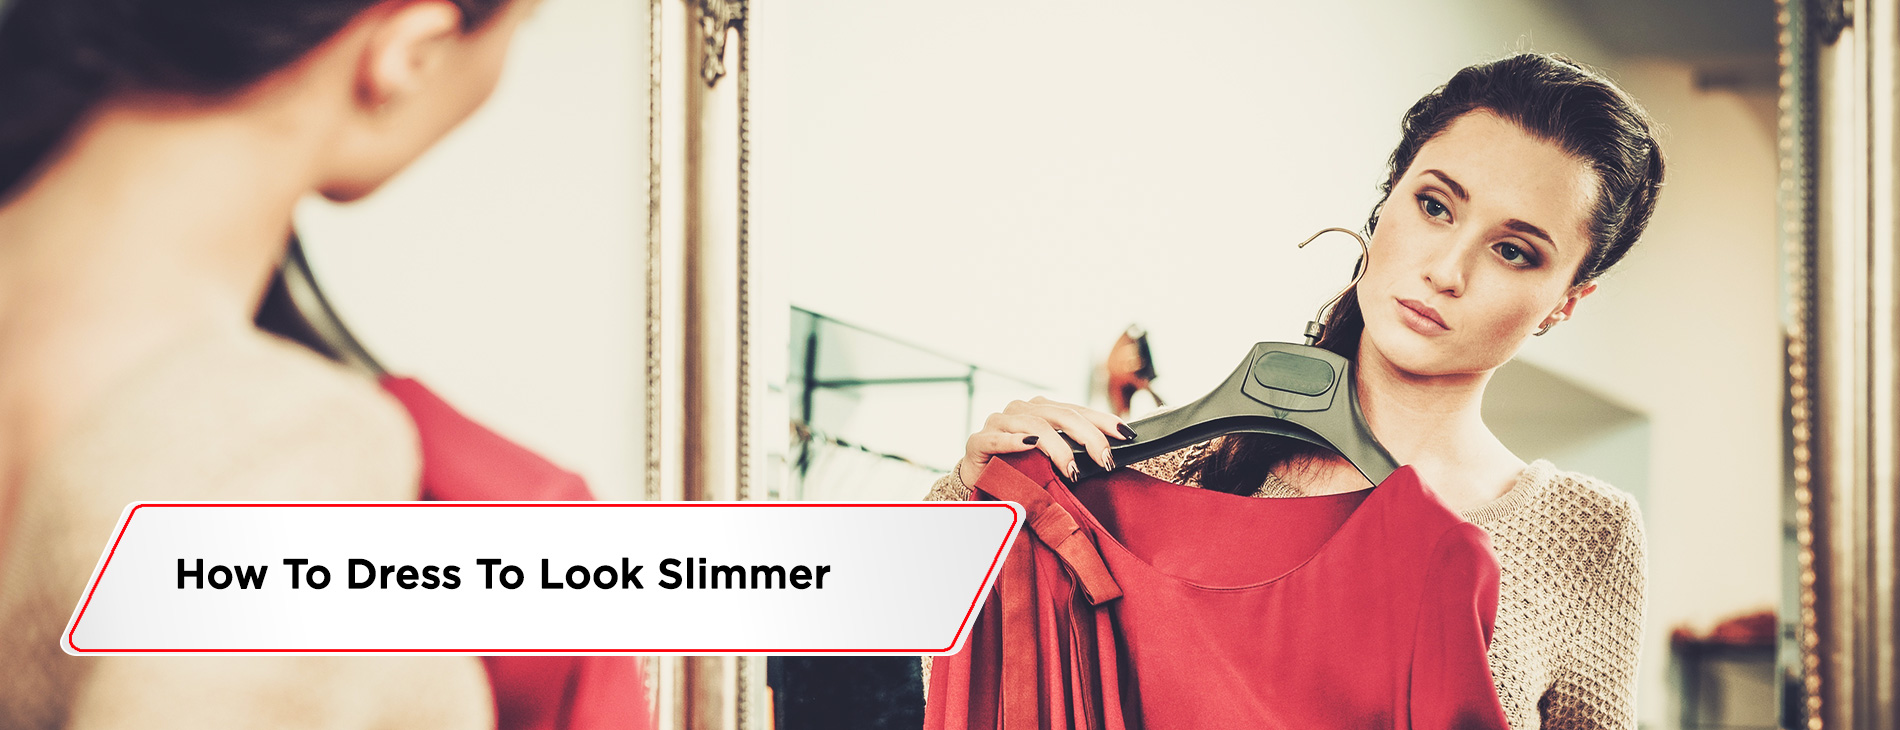 How-To-Dress-To-Look-Slimmer